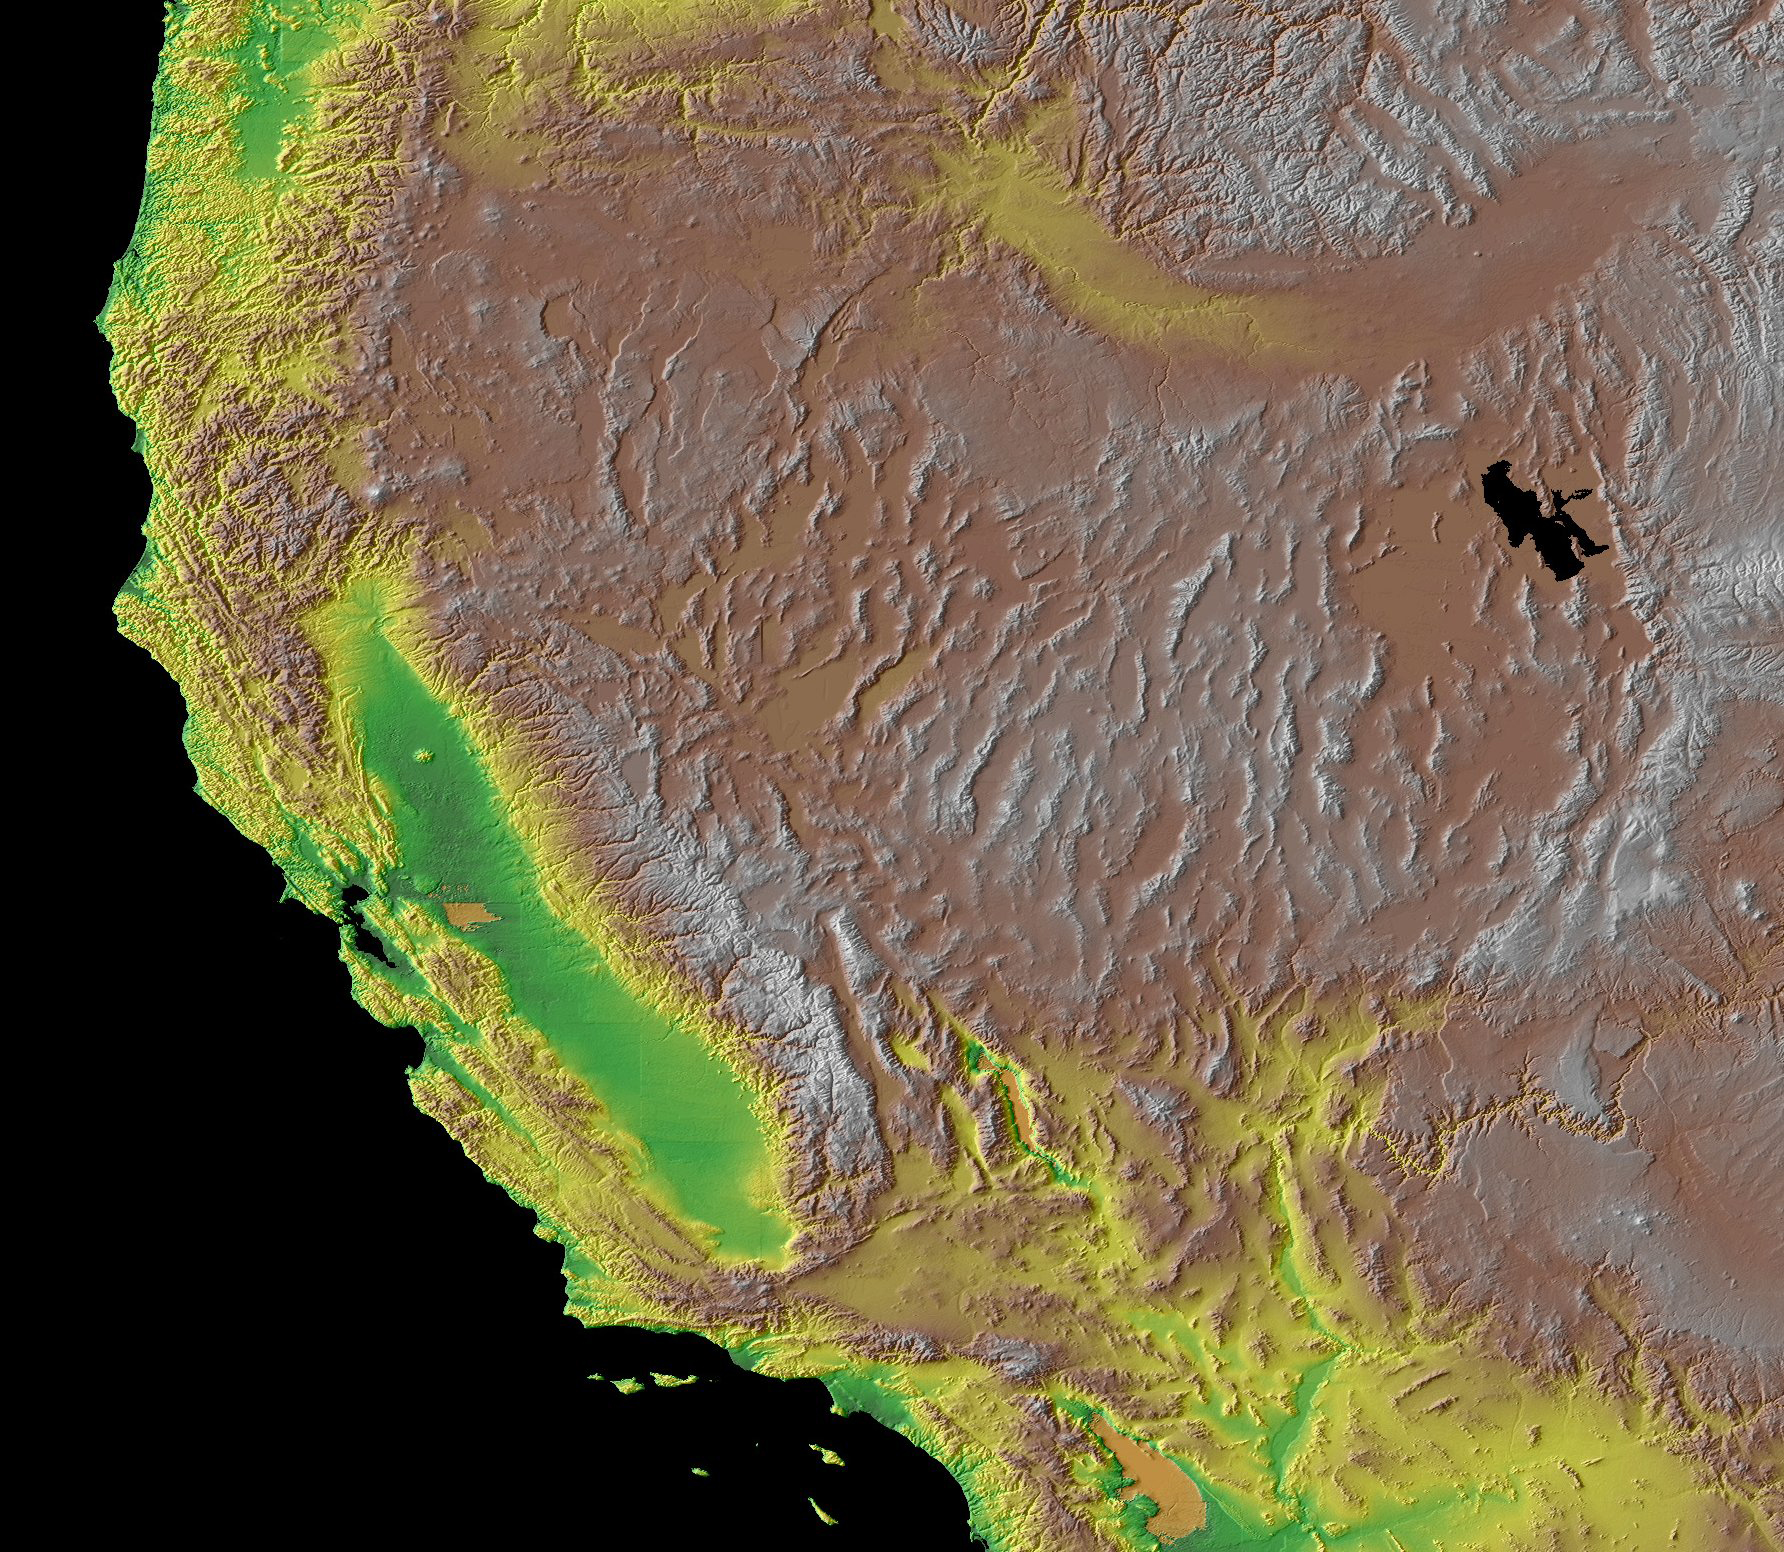 Topographic Map Of Southwest Us Earth's Extremophiles: Implications for Life in the Solar System